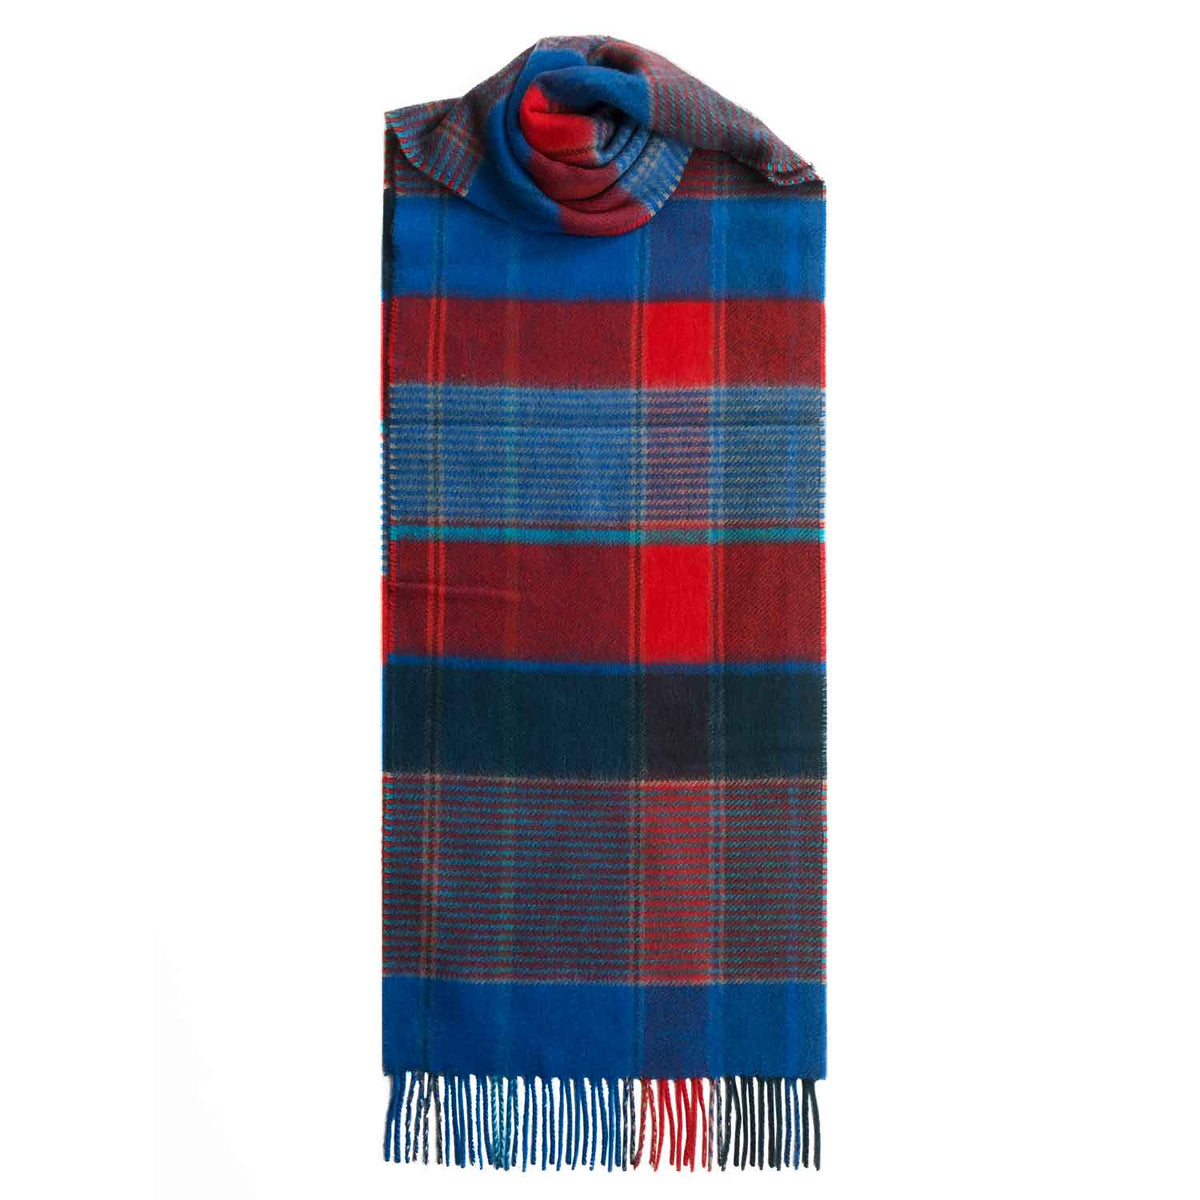 Lomond Cashmere | Red Blue | Check Cashmere Scarf With Fringes | Made in Scotland | Shop at The Cashmere Choice | London